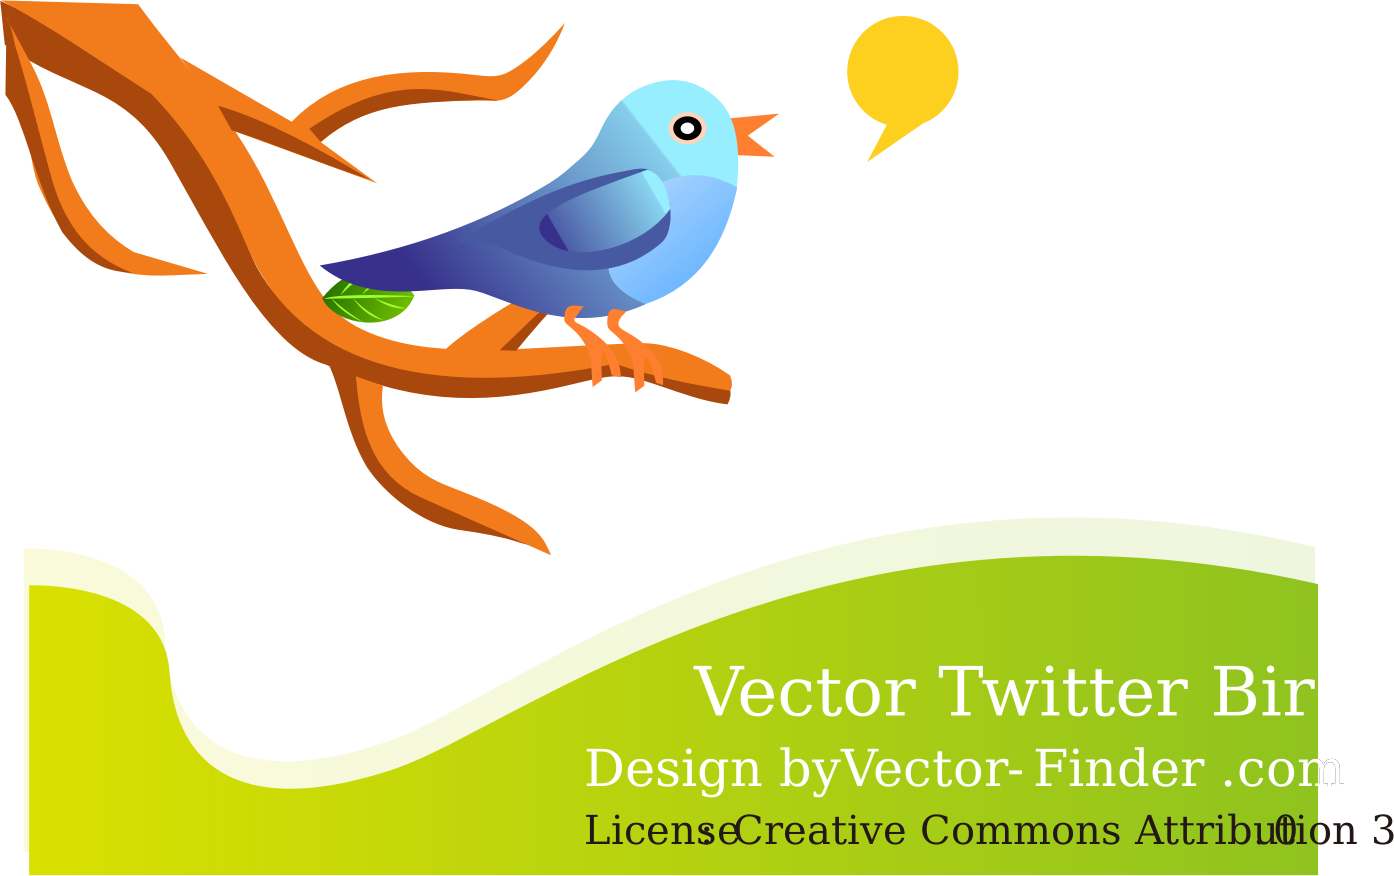 Clipart - Free Vector Tweeting Bird